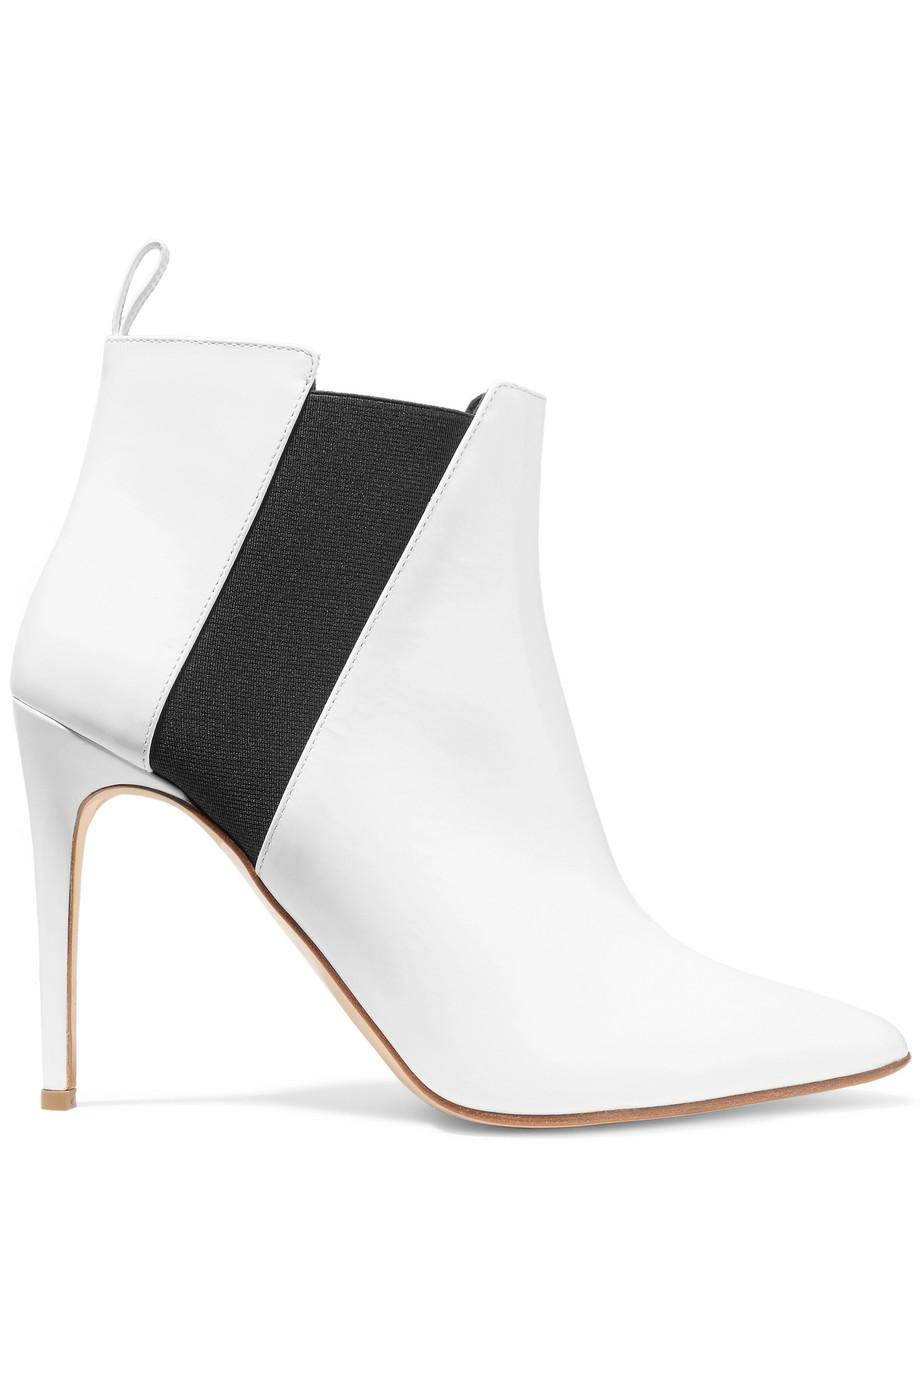 pointed toe boots - White Rupert Sanderson Clearance Sast 4zGSf0Dtl